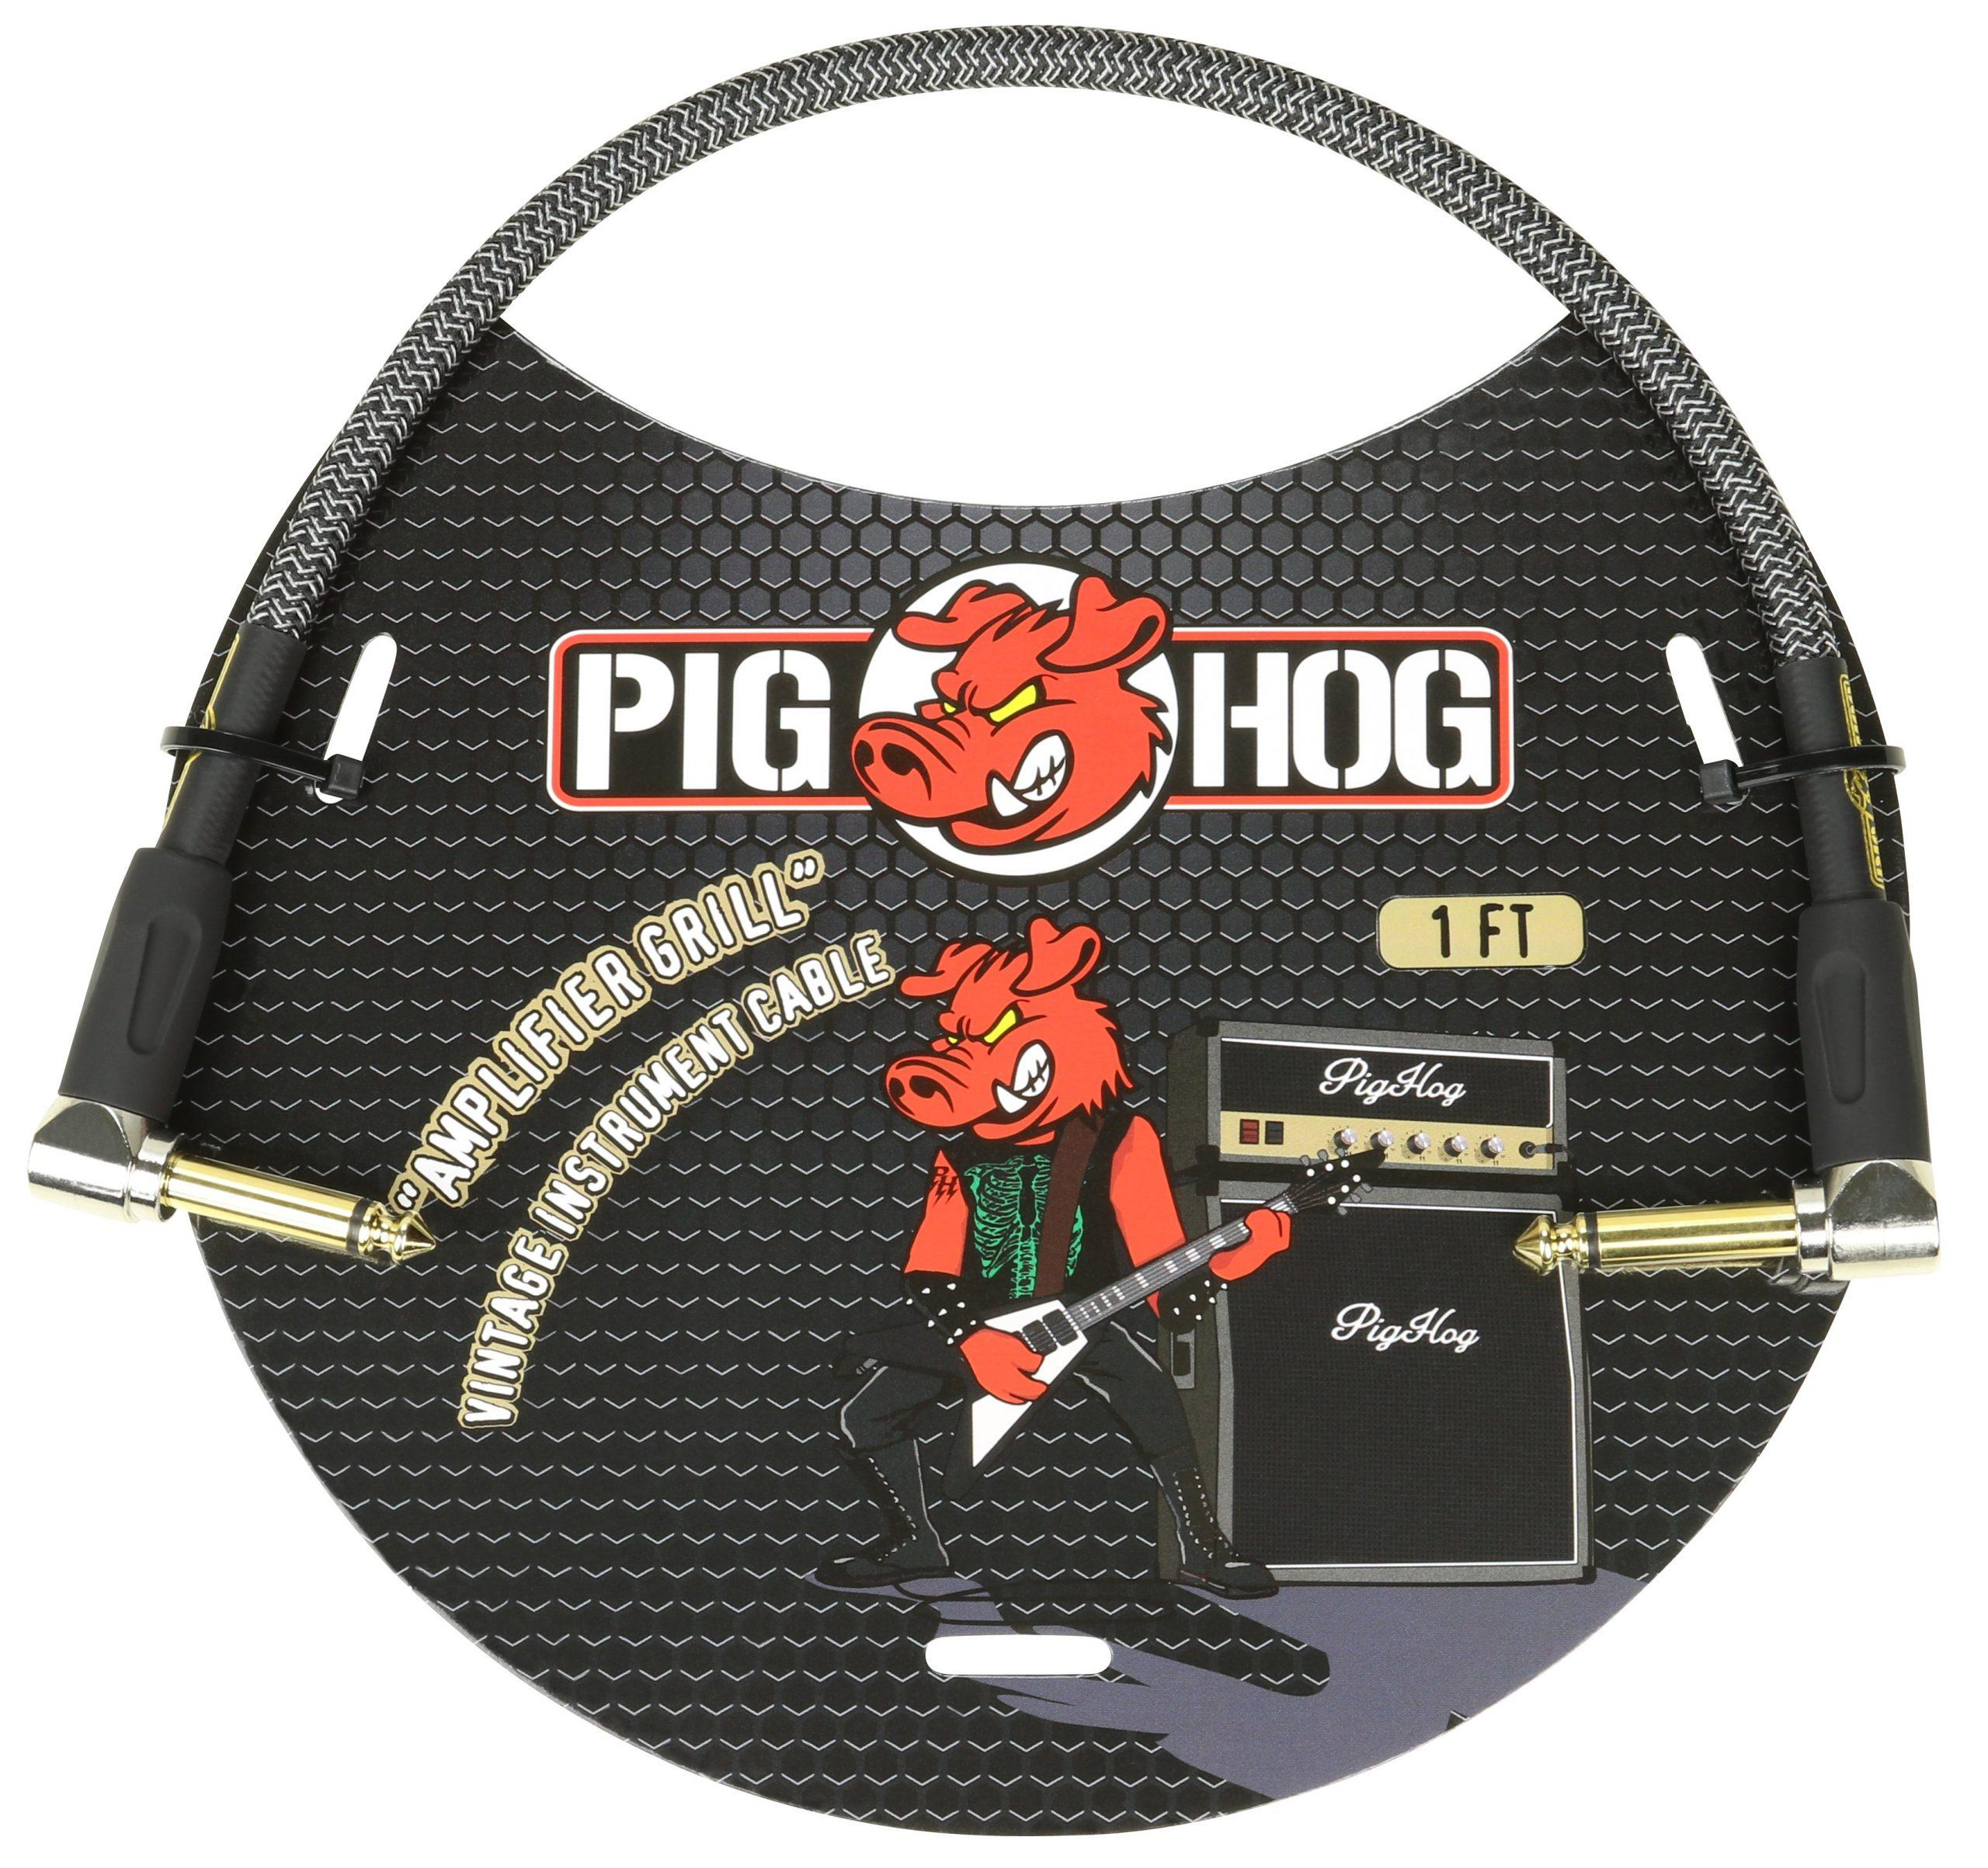 """Pig Hog """"Amplifier Grill"""" 1ft Right Angled Patch Cables"""